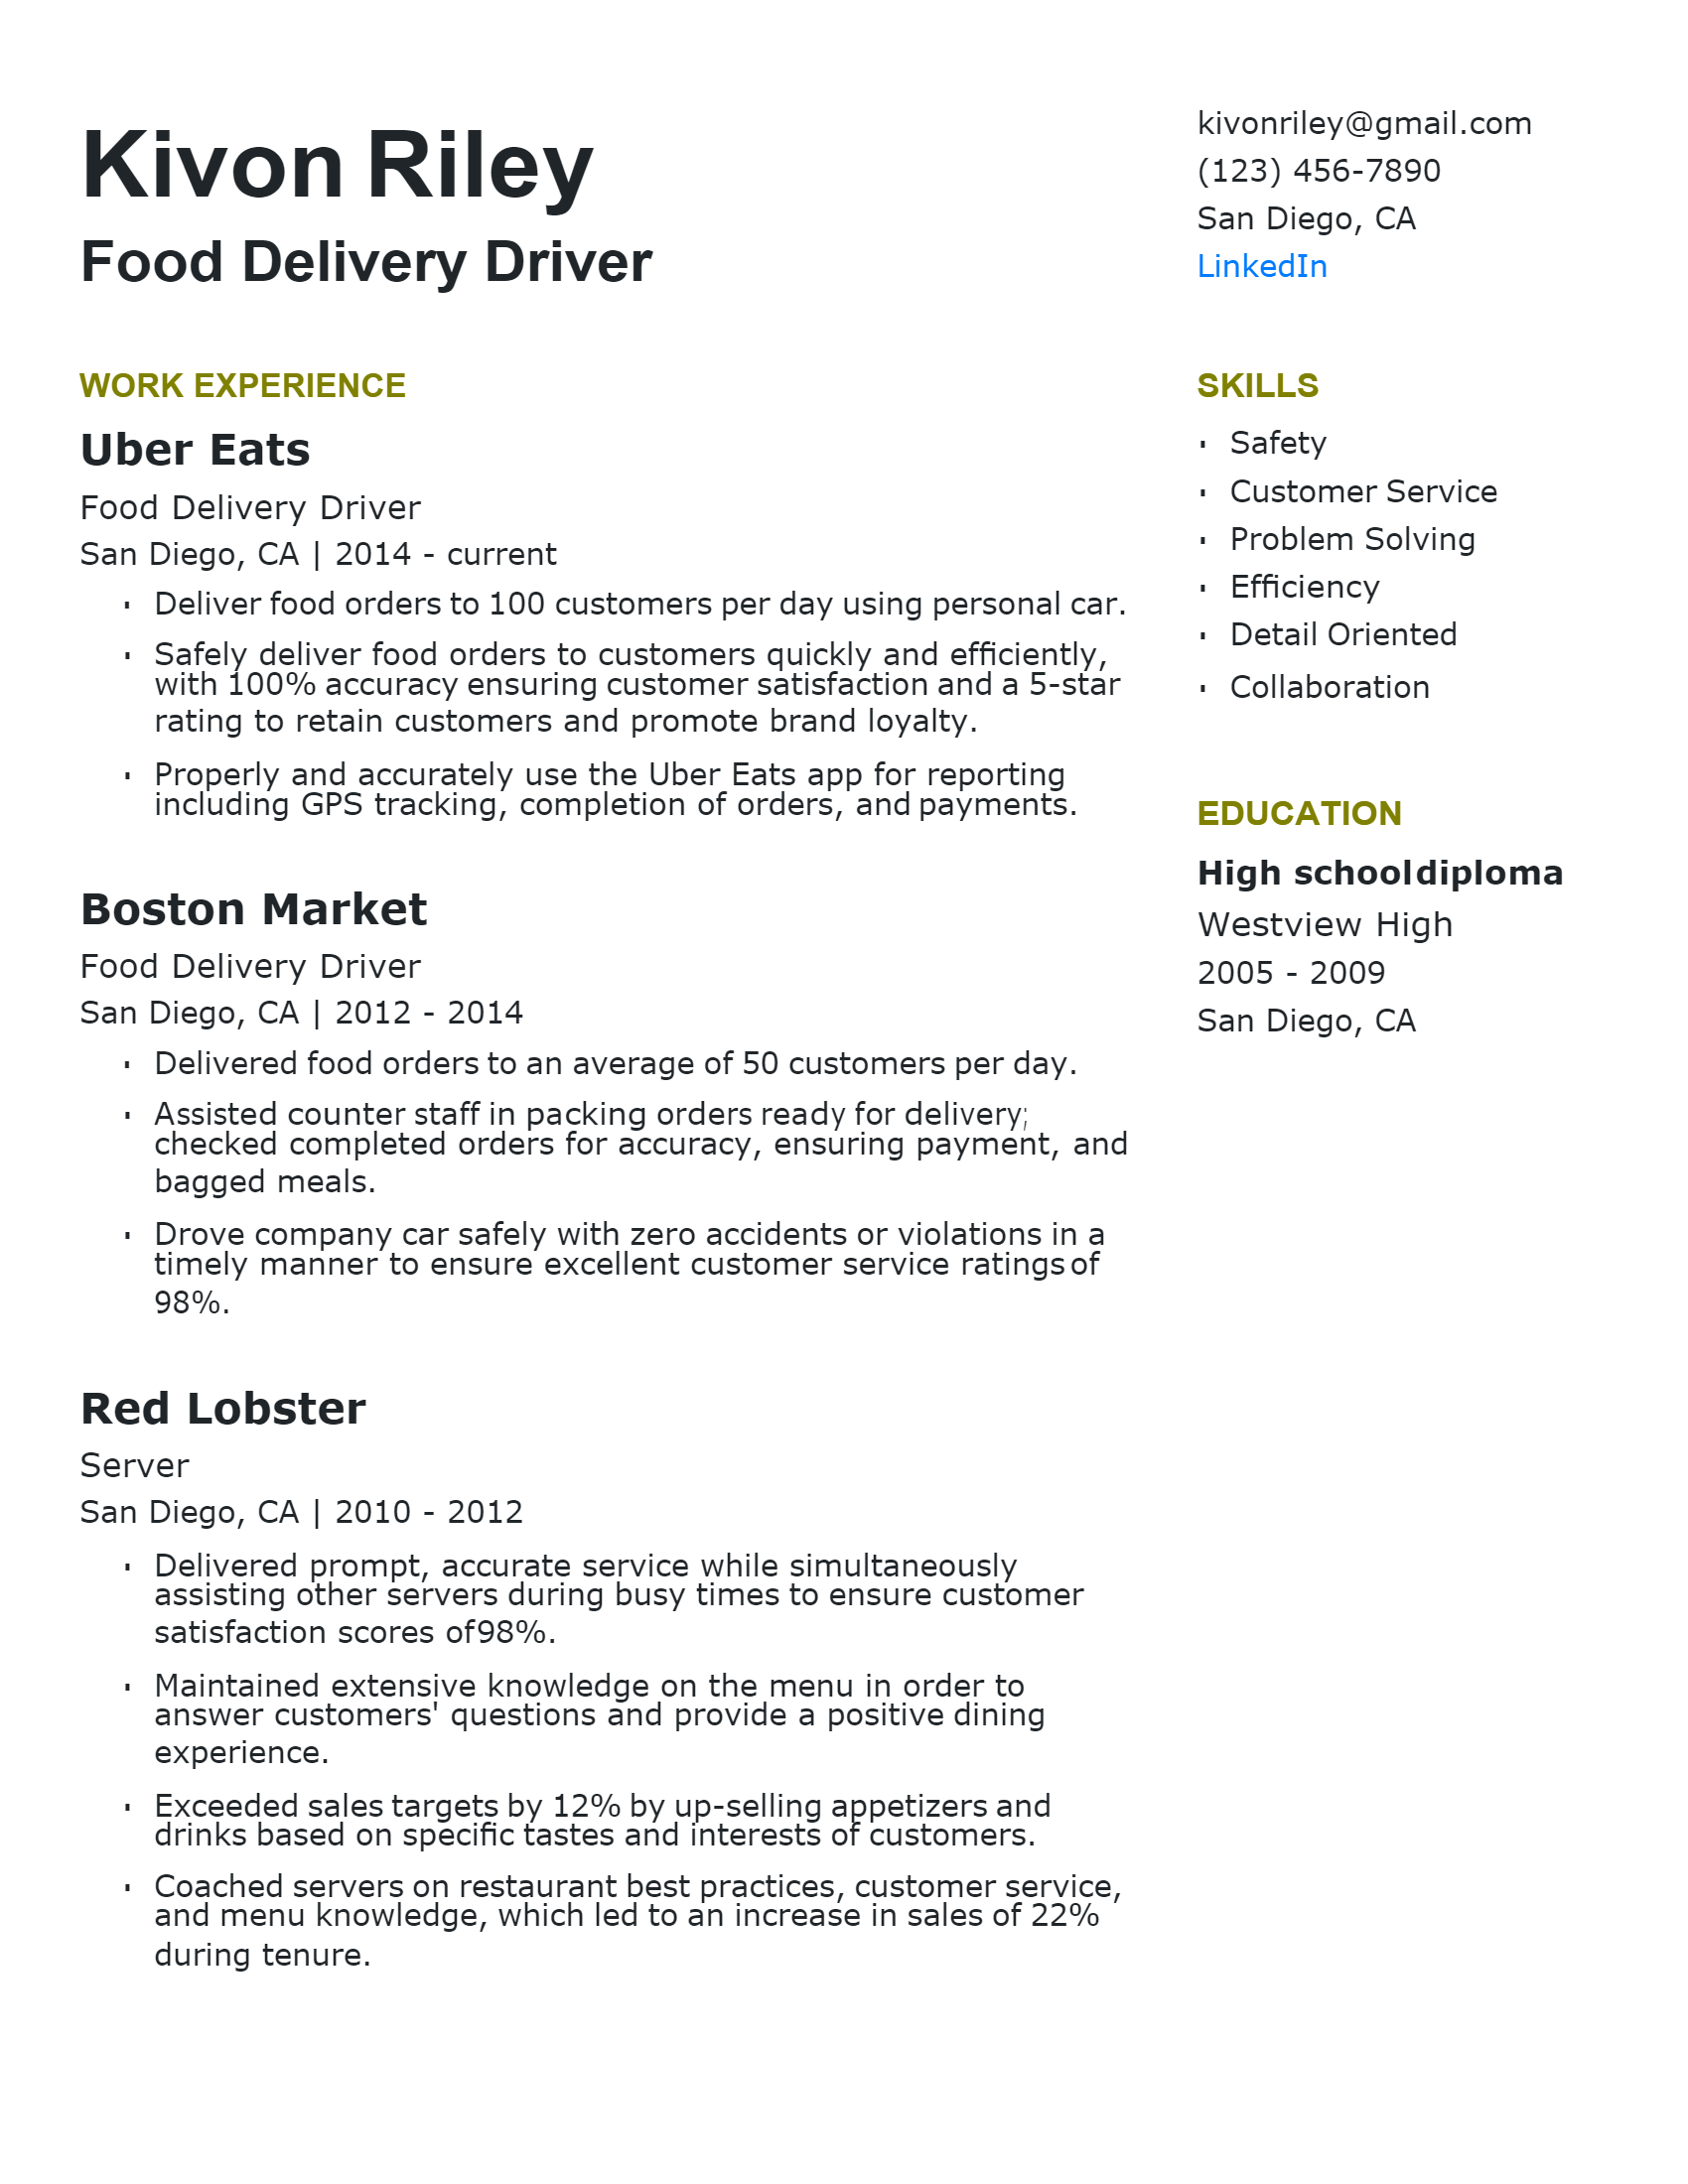 Food Delivery Driver Resume